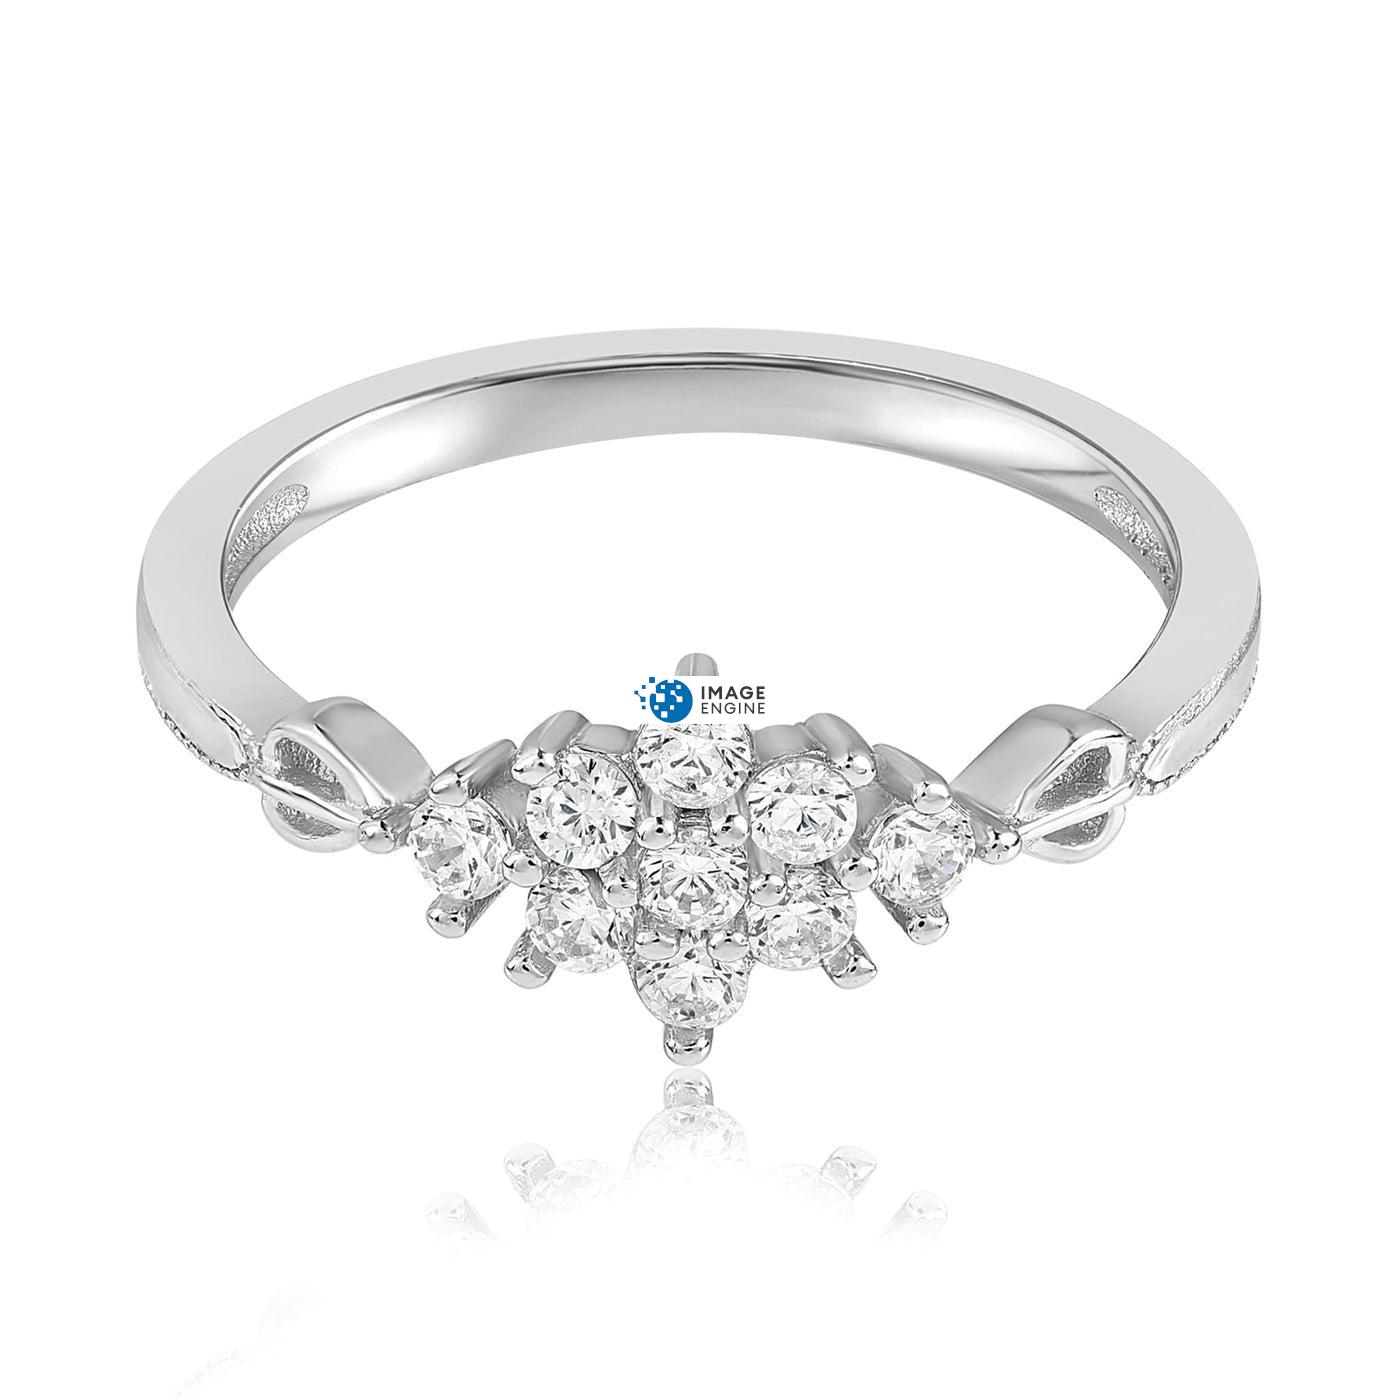 Sarah Snowflake Dainty Ring - Front View Facing Down - 925 Sterling Silver